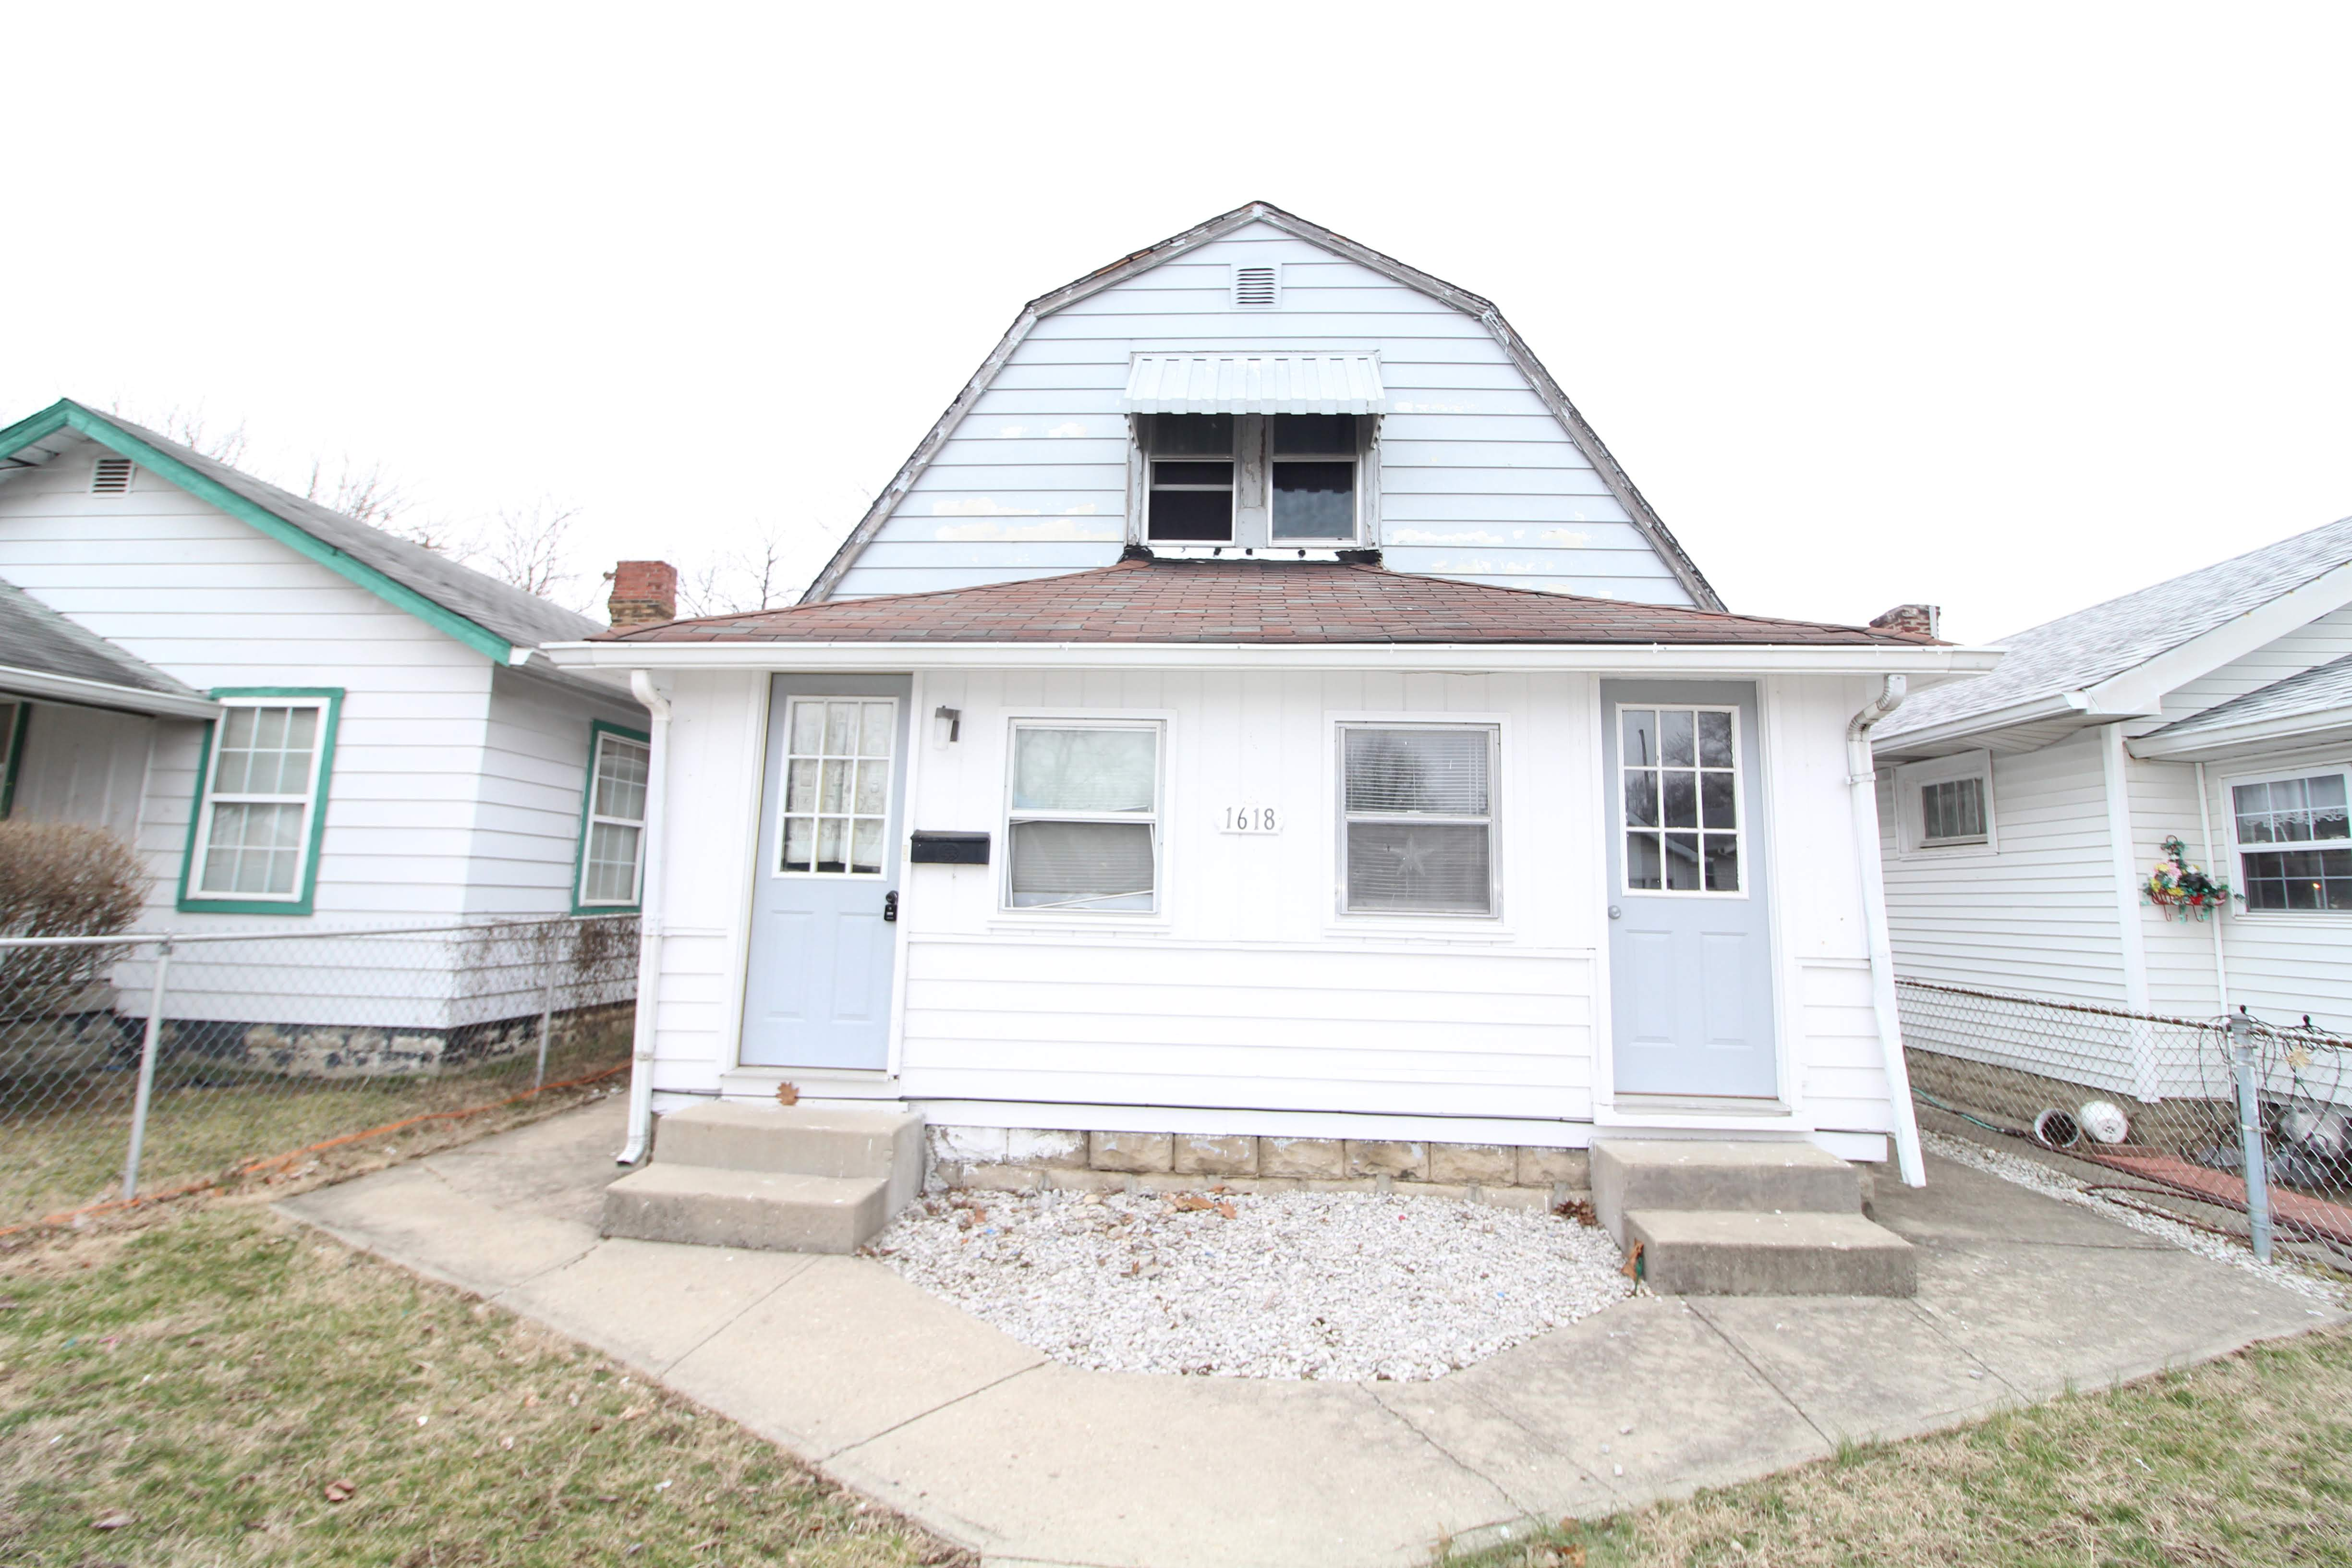 1618 Asbury St, Indianapolis, IN